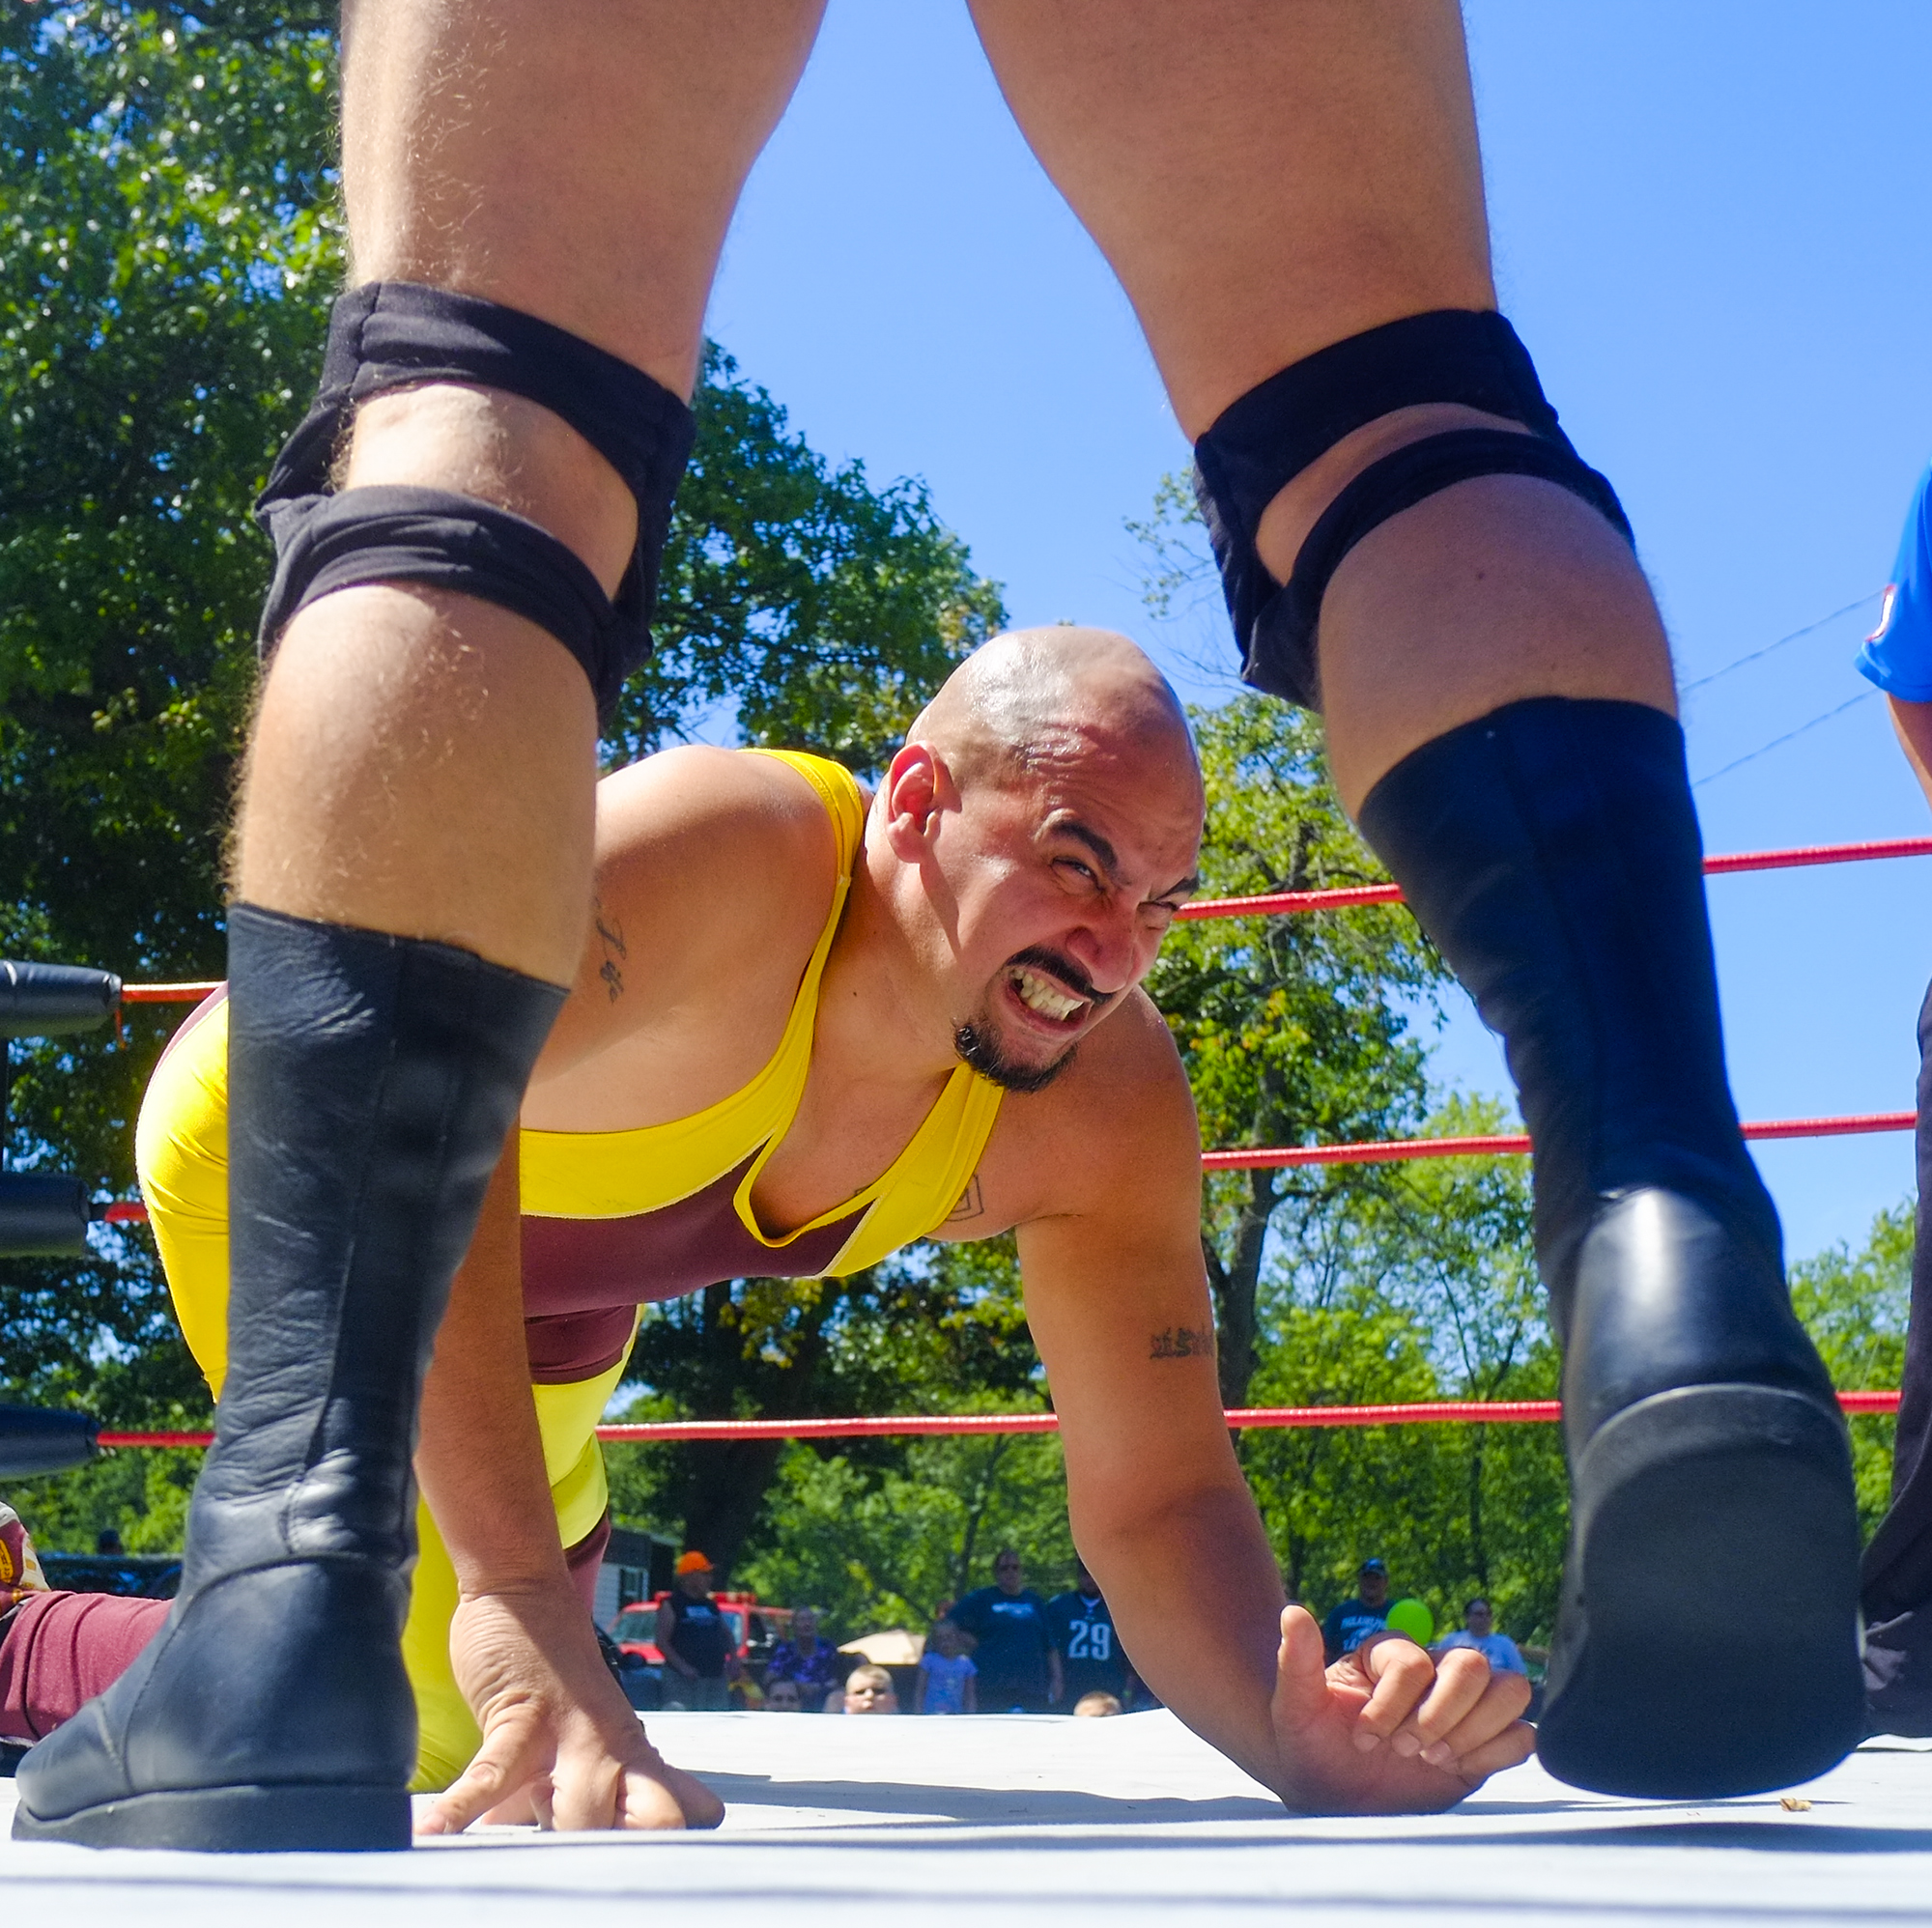 A wrestler grimaces as his opponent approaches him in the ring during a wrestling expo at the Marion Party in the Park festival.